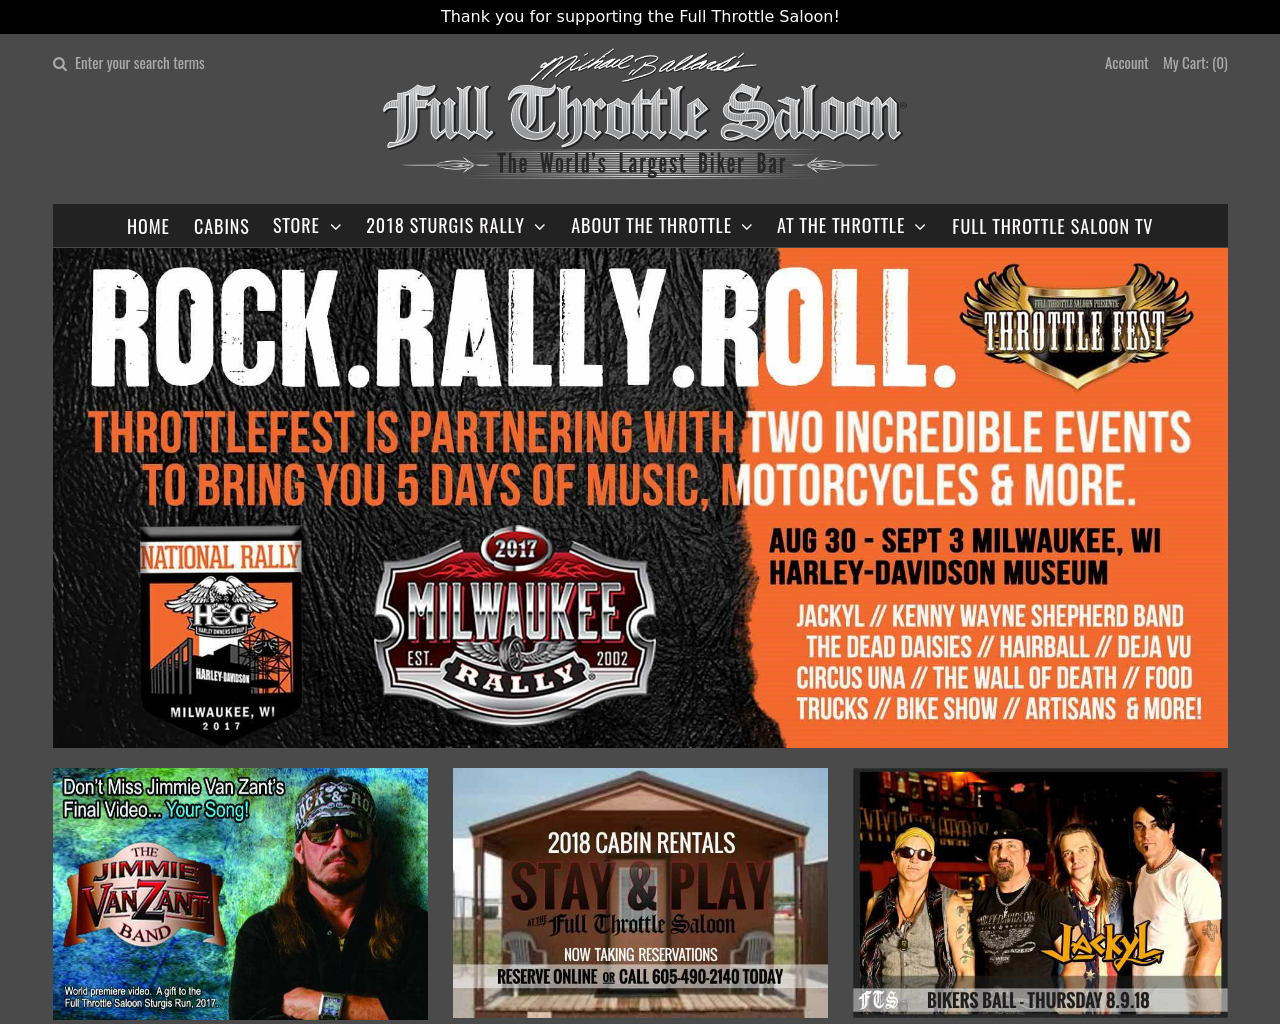 Full-Throttle-Saloon-Advertising-Reviews-Pricing